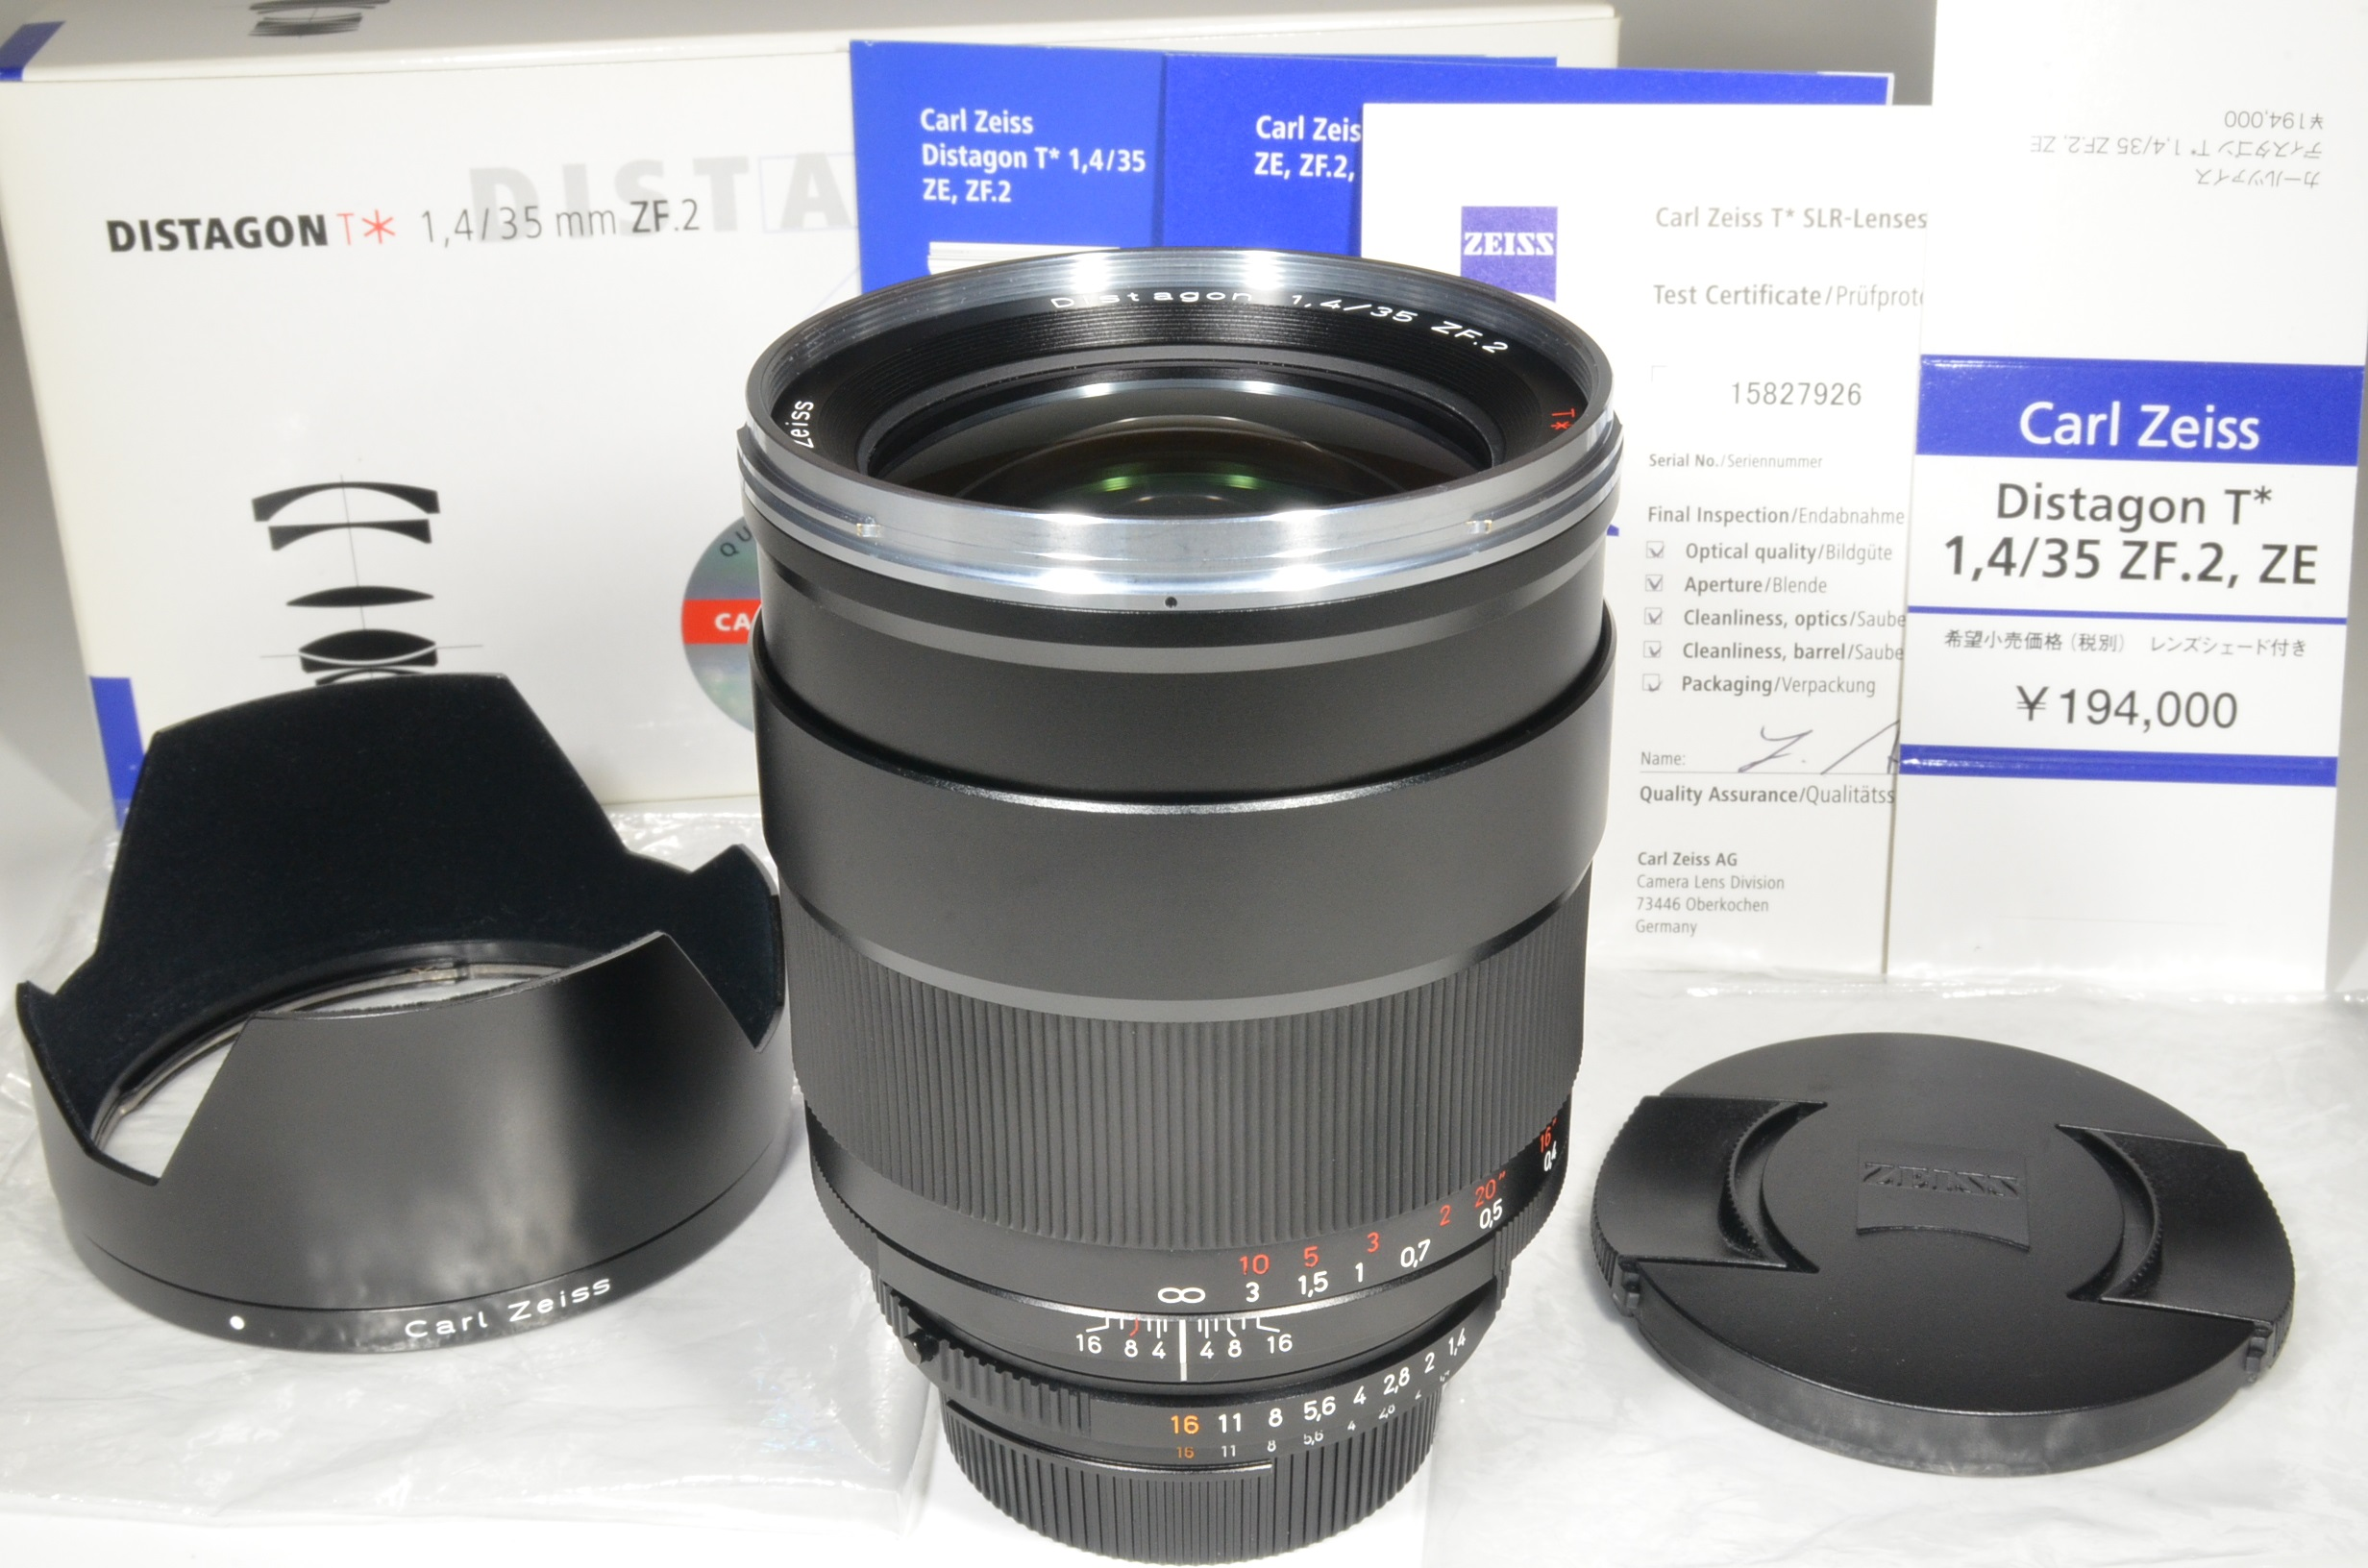 carl zeiss distagon t* 35mm f1.4 zf.2 for nikon lens